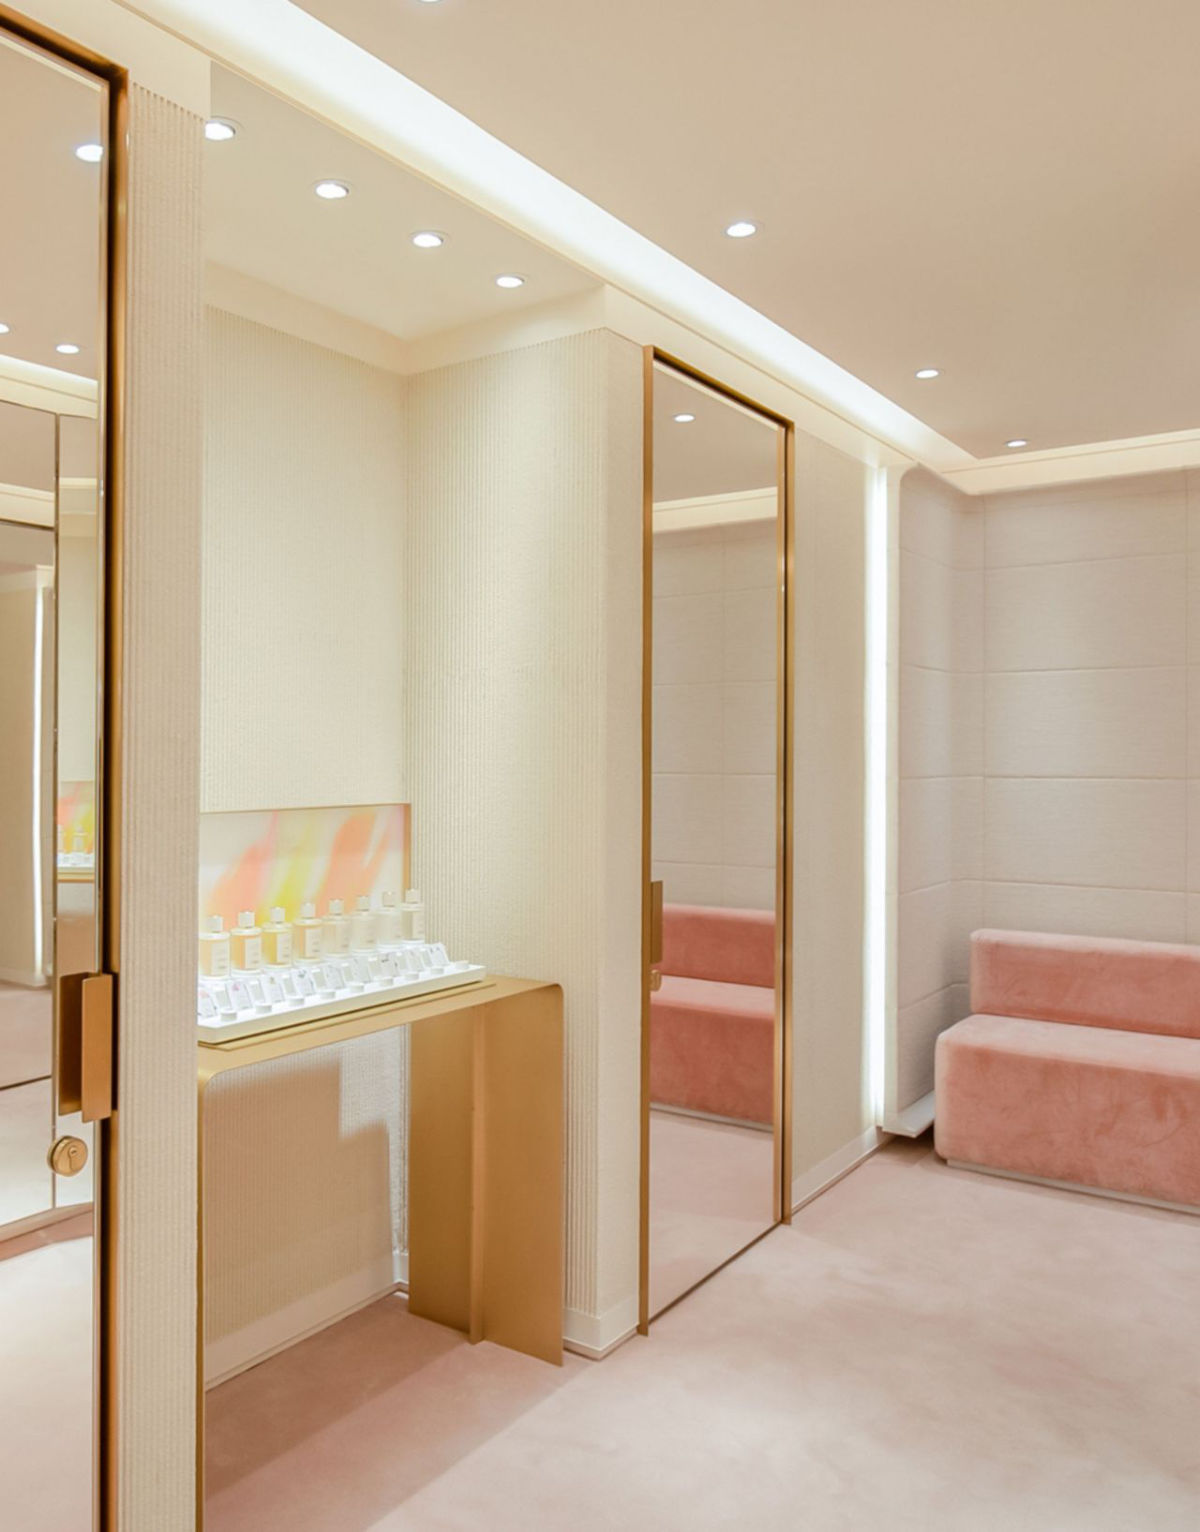 Latest Chloé boutique in the Taikoo Hui Guangzhou-Shopping Mall in China